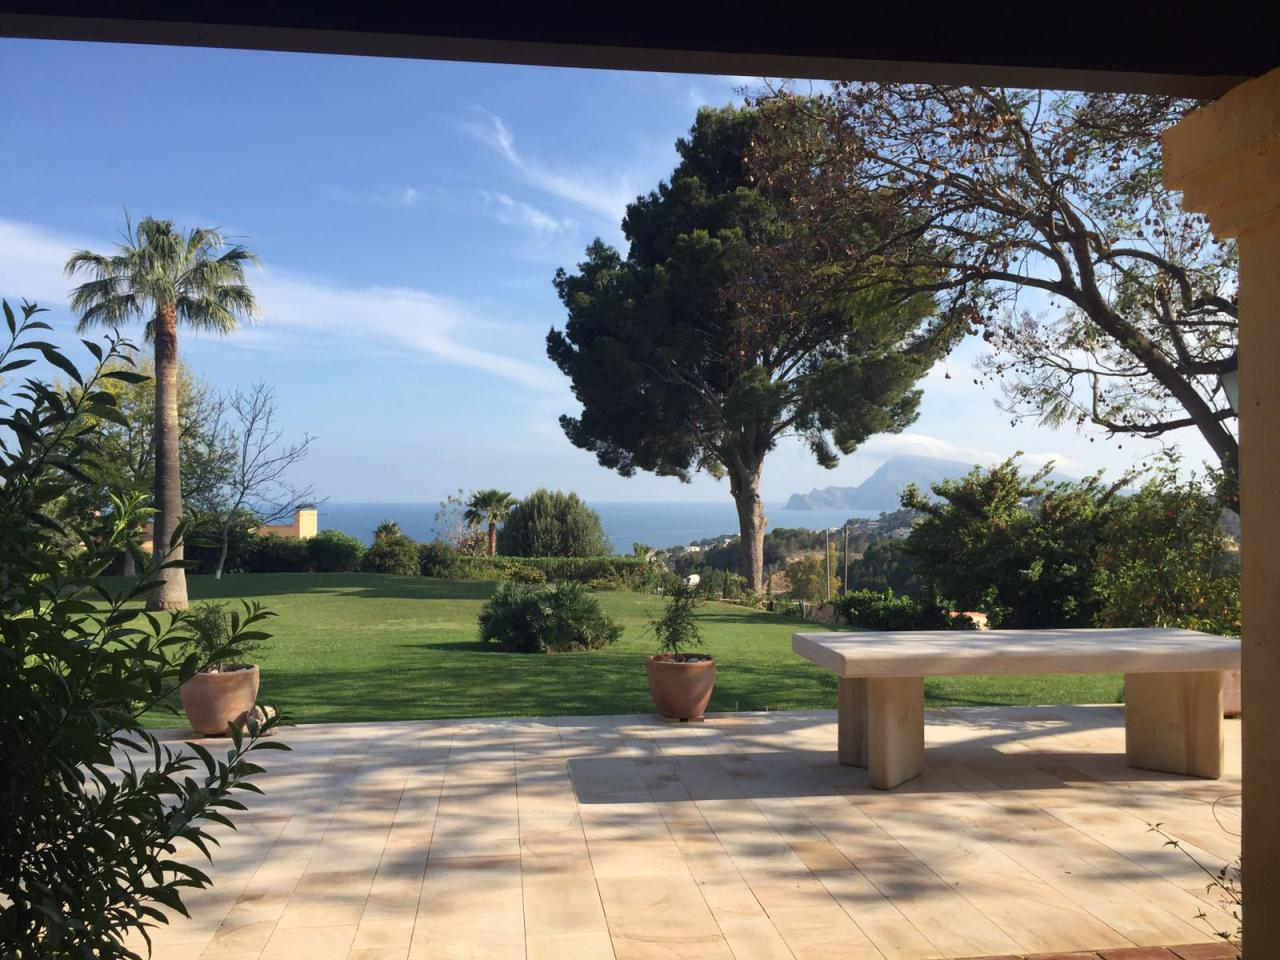 Ville / Villette per Vendita alle ore Luxury Villa for sale in Altea Altea, Spagna